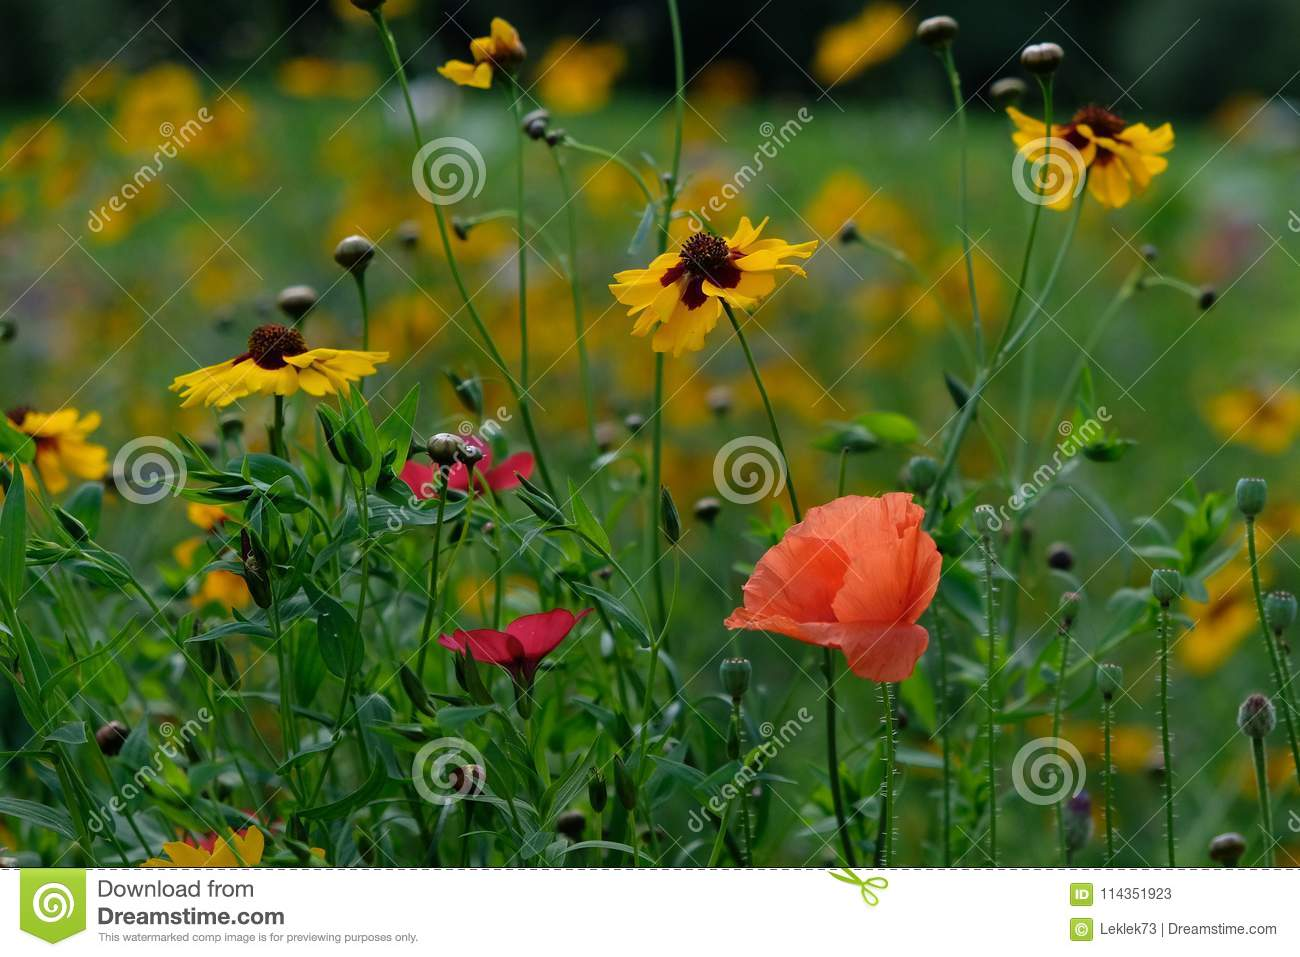 Photo Of A Pink Poppy In A Field Of Wild Flowers Taken On A Sunny